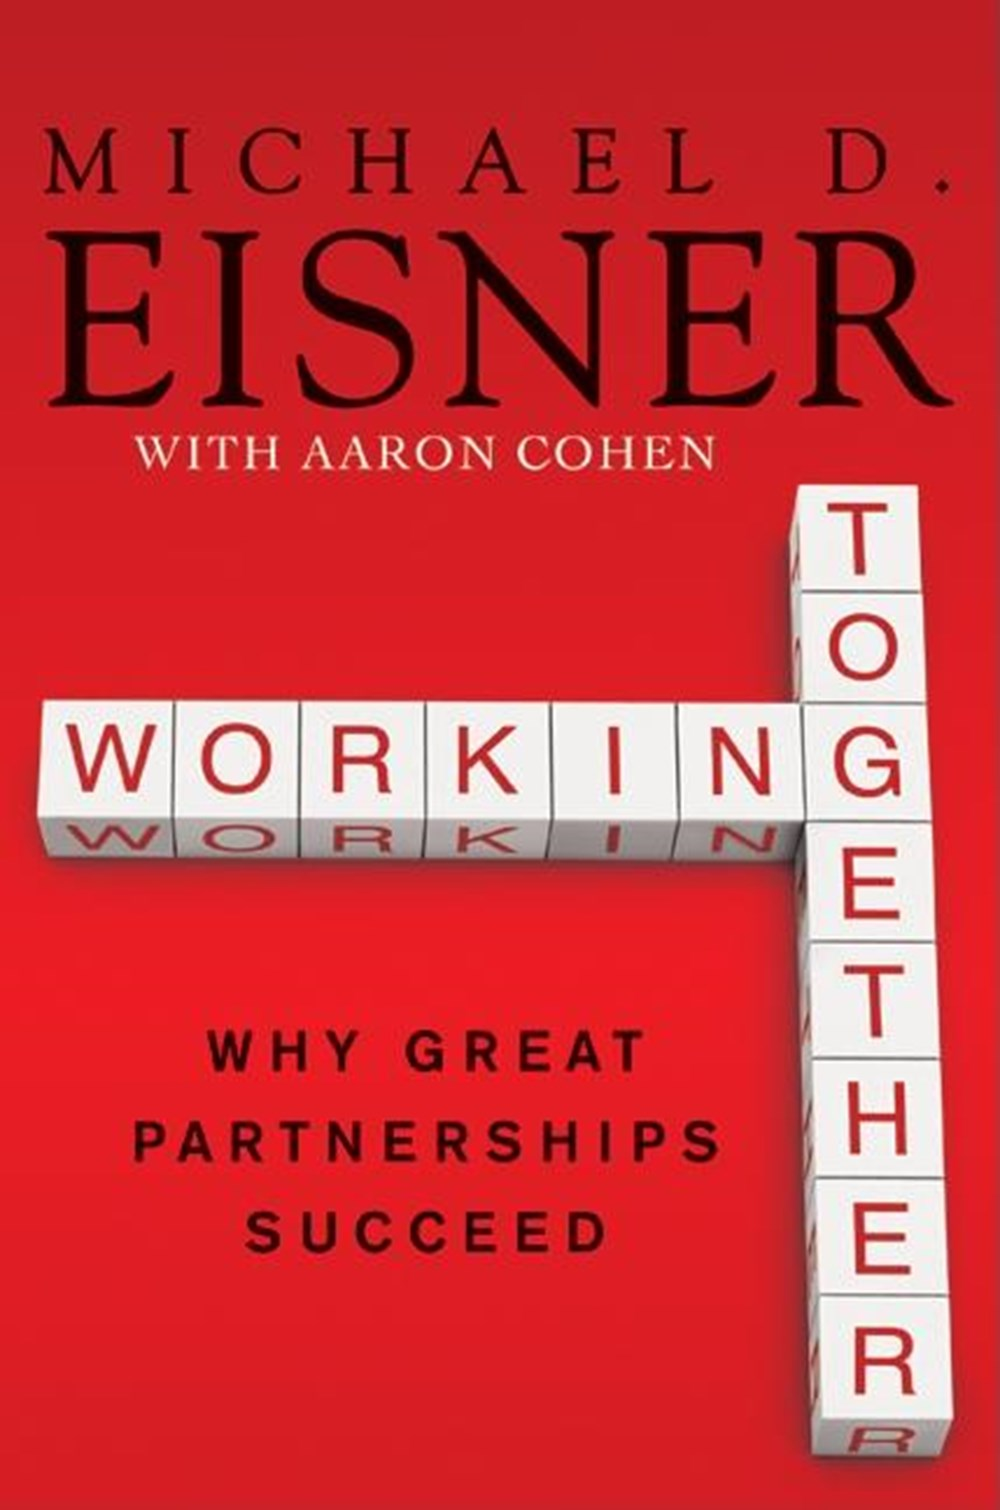 Working Together Why Great Partnerships Succeed